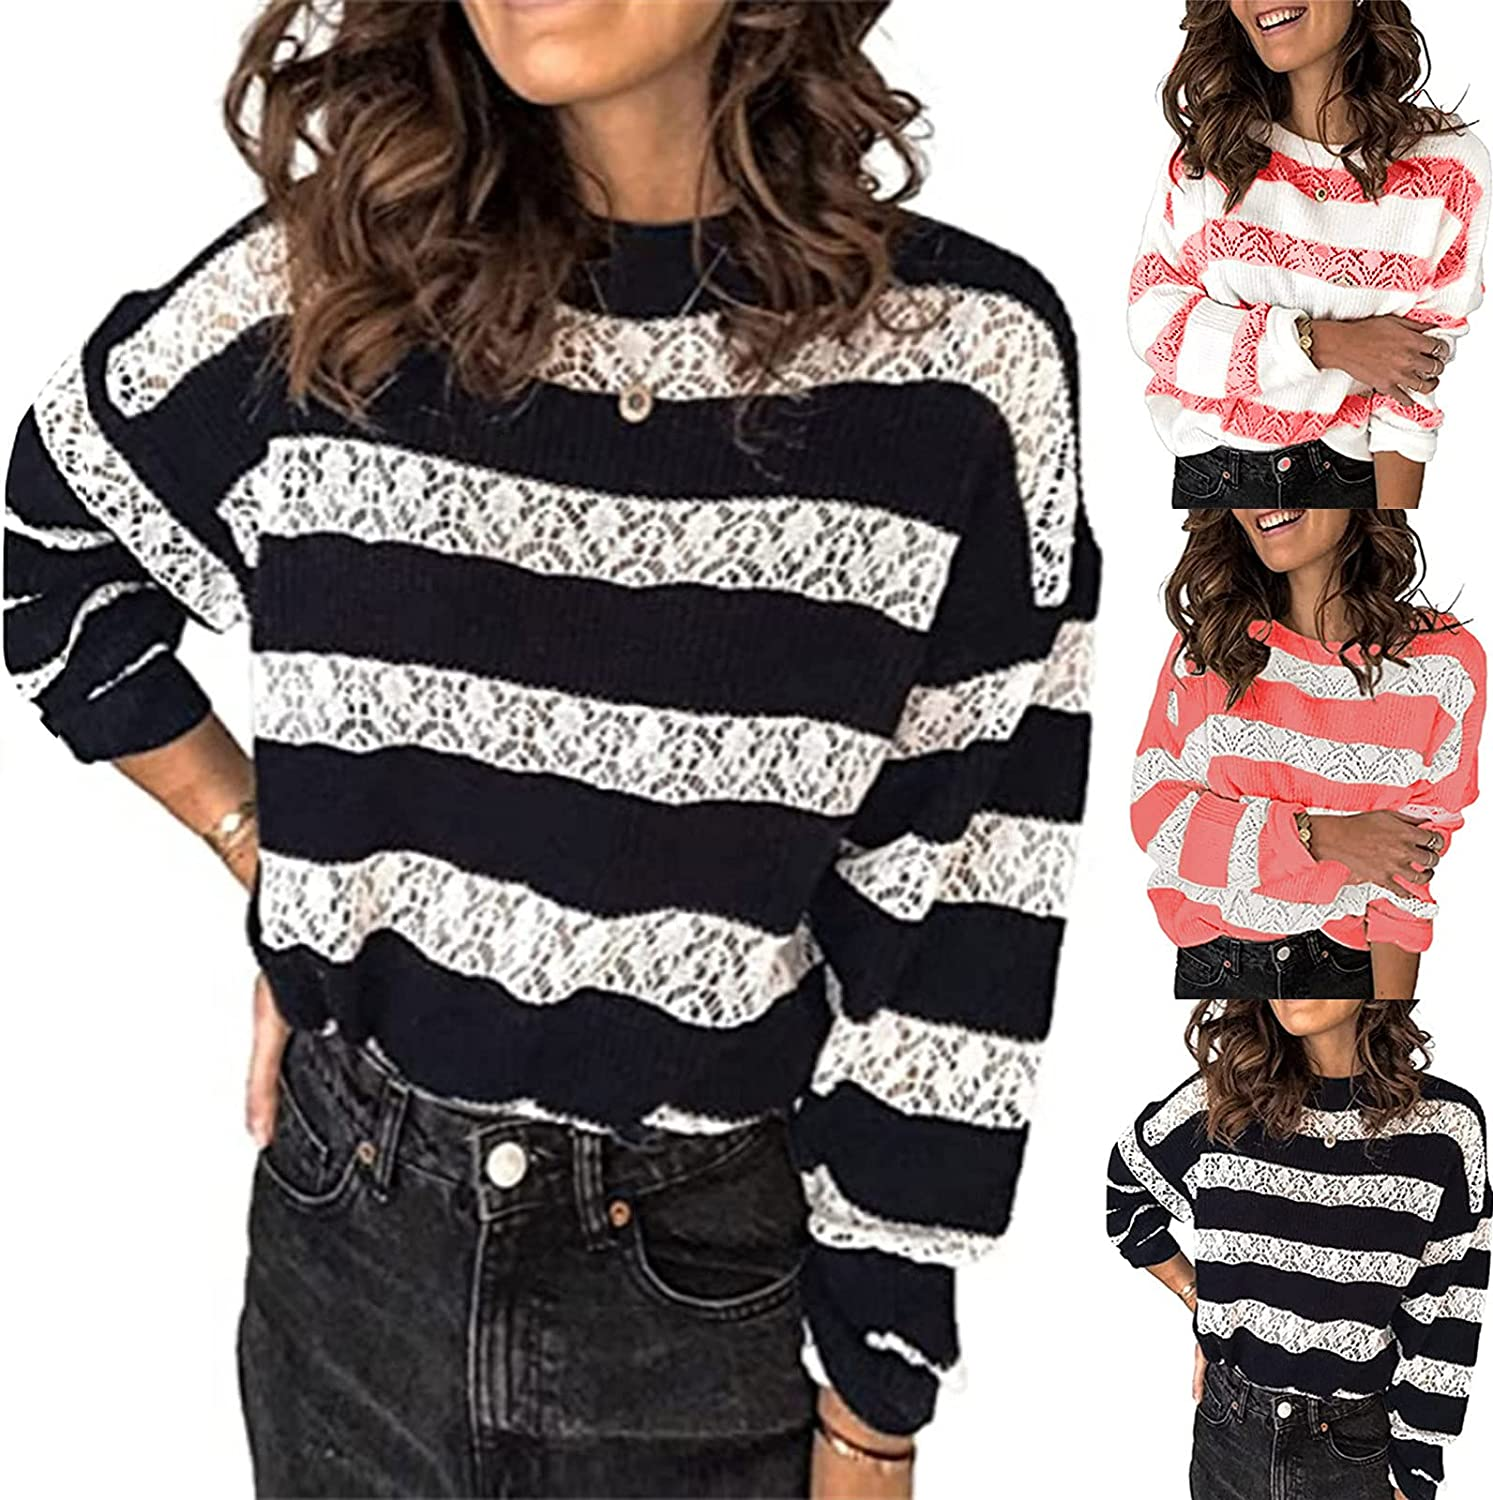 Women's Pullover Sweater Lace Up Patchwork Hollow O-Neck Long Sleeve Pullover Blouse Knitted Sweater